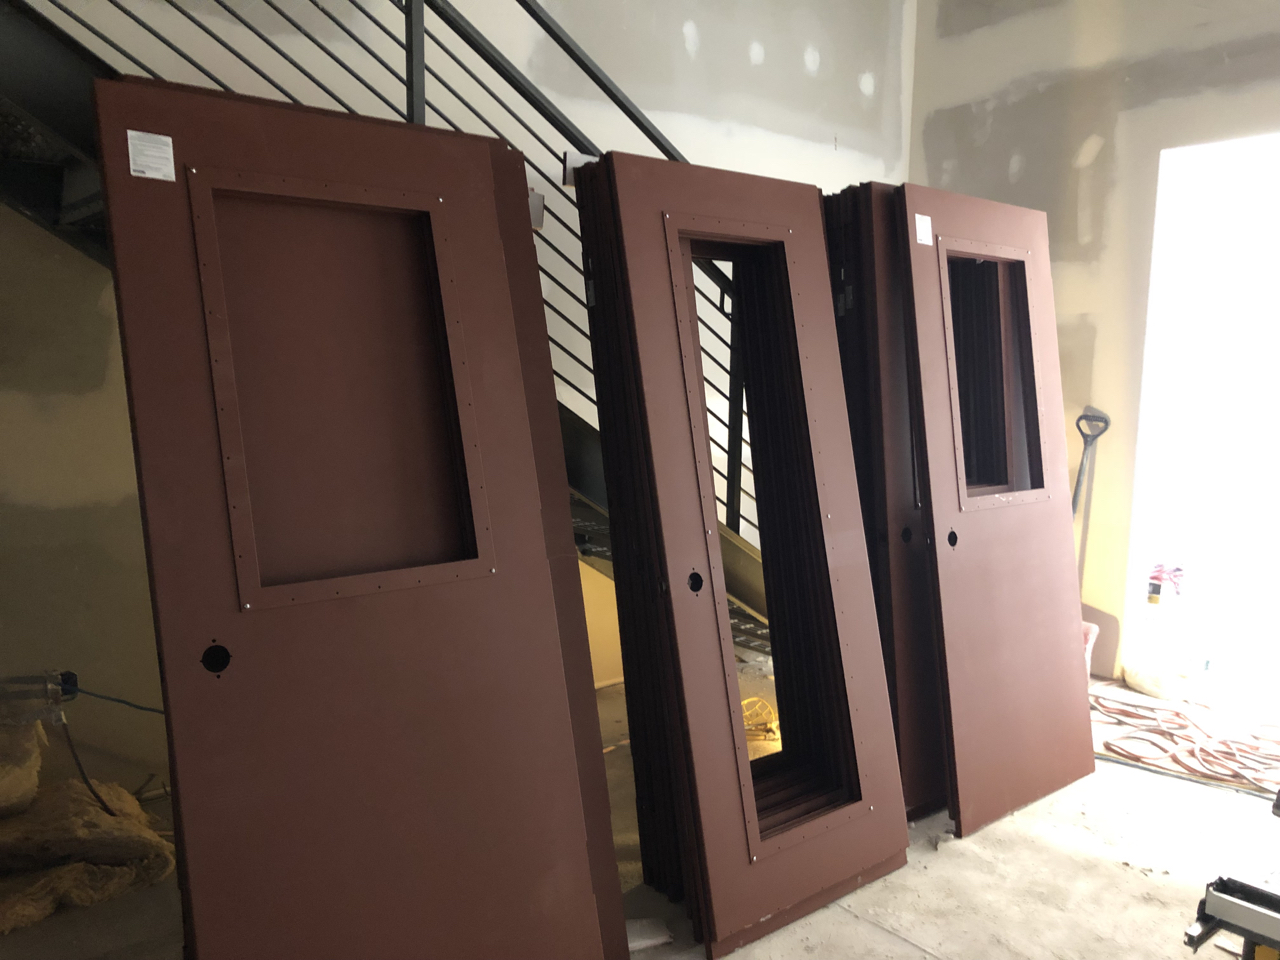 On Thursday the    Overly acoustic doors    arrived. The doors are so heavy that the installers - three big guys, have a hard time lifting them and getting them on the hinges. The solid slabs are 51db doors and the doors with windows are 47db.